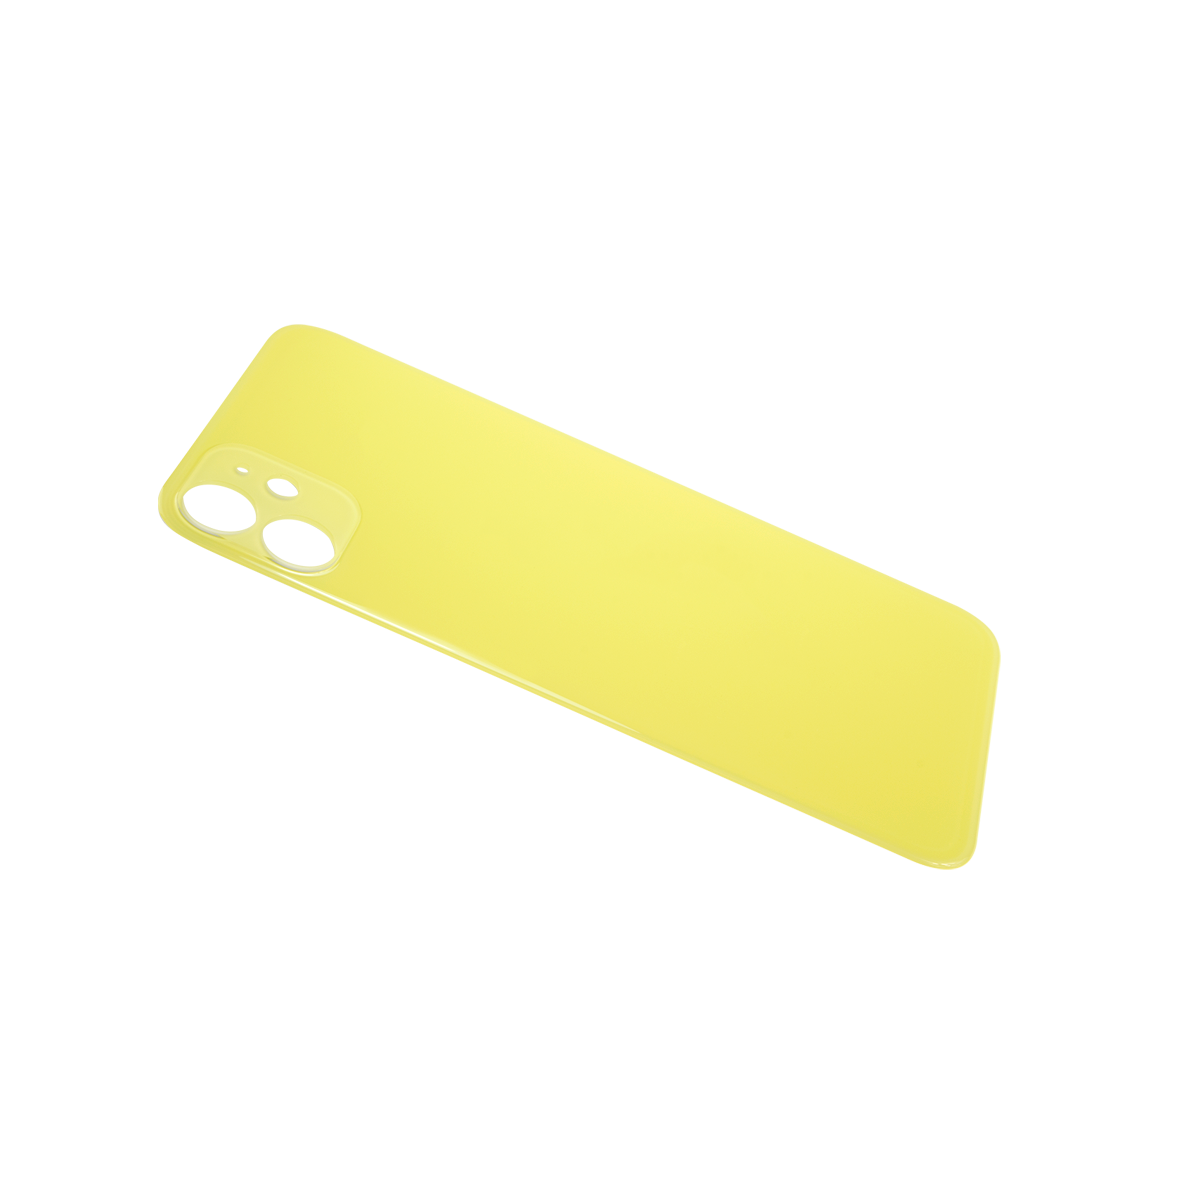 iPhone_11_Rear_Glass_Replacement_yellow_side_view_SBQOCSW11WY4.png